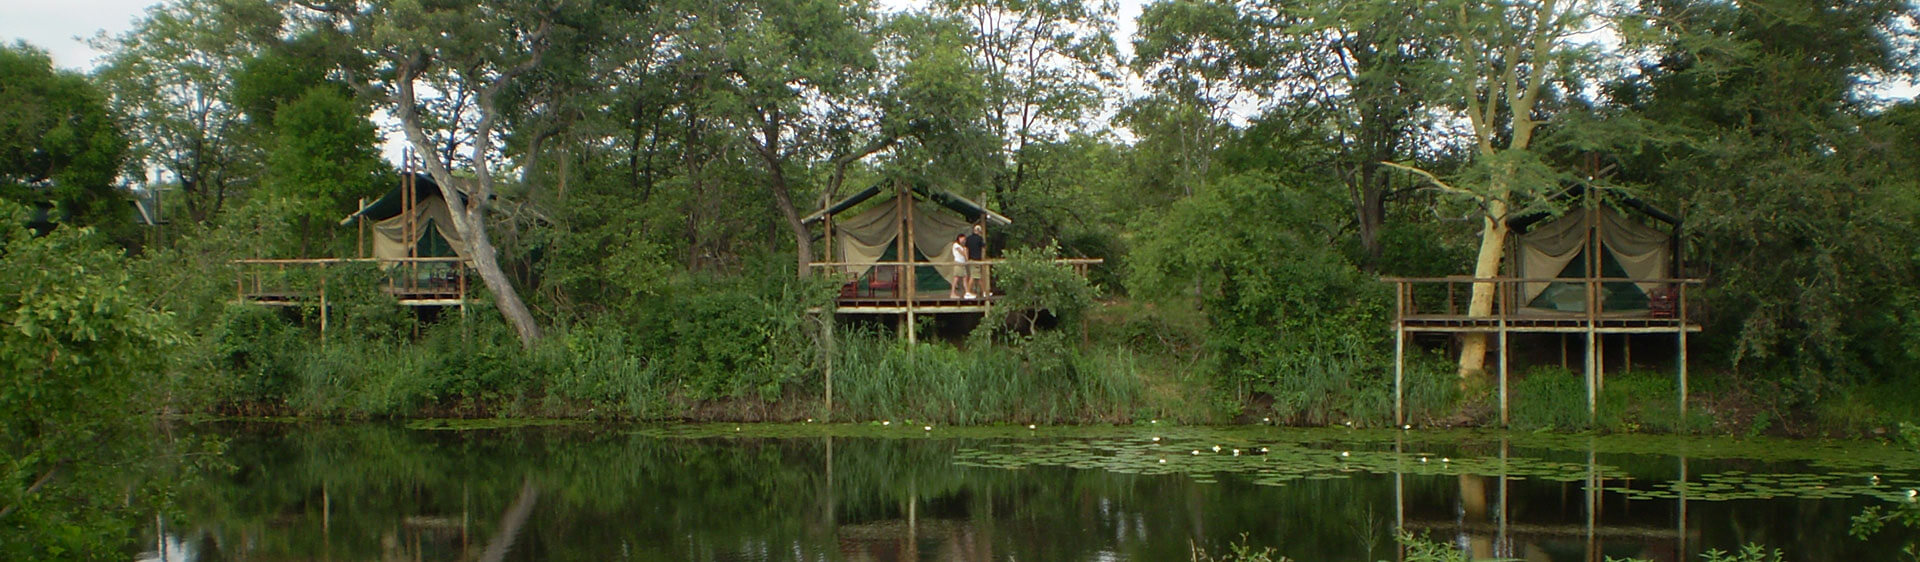 Machampane Wilderness Camp